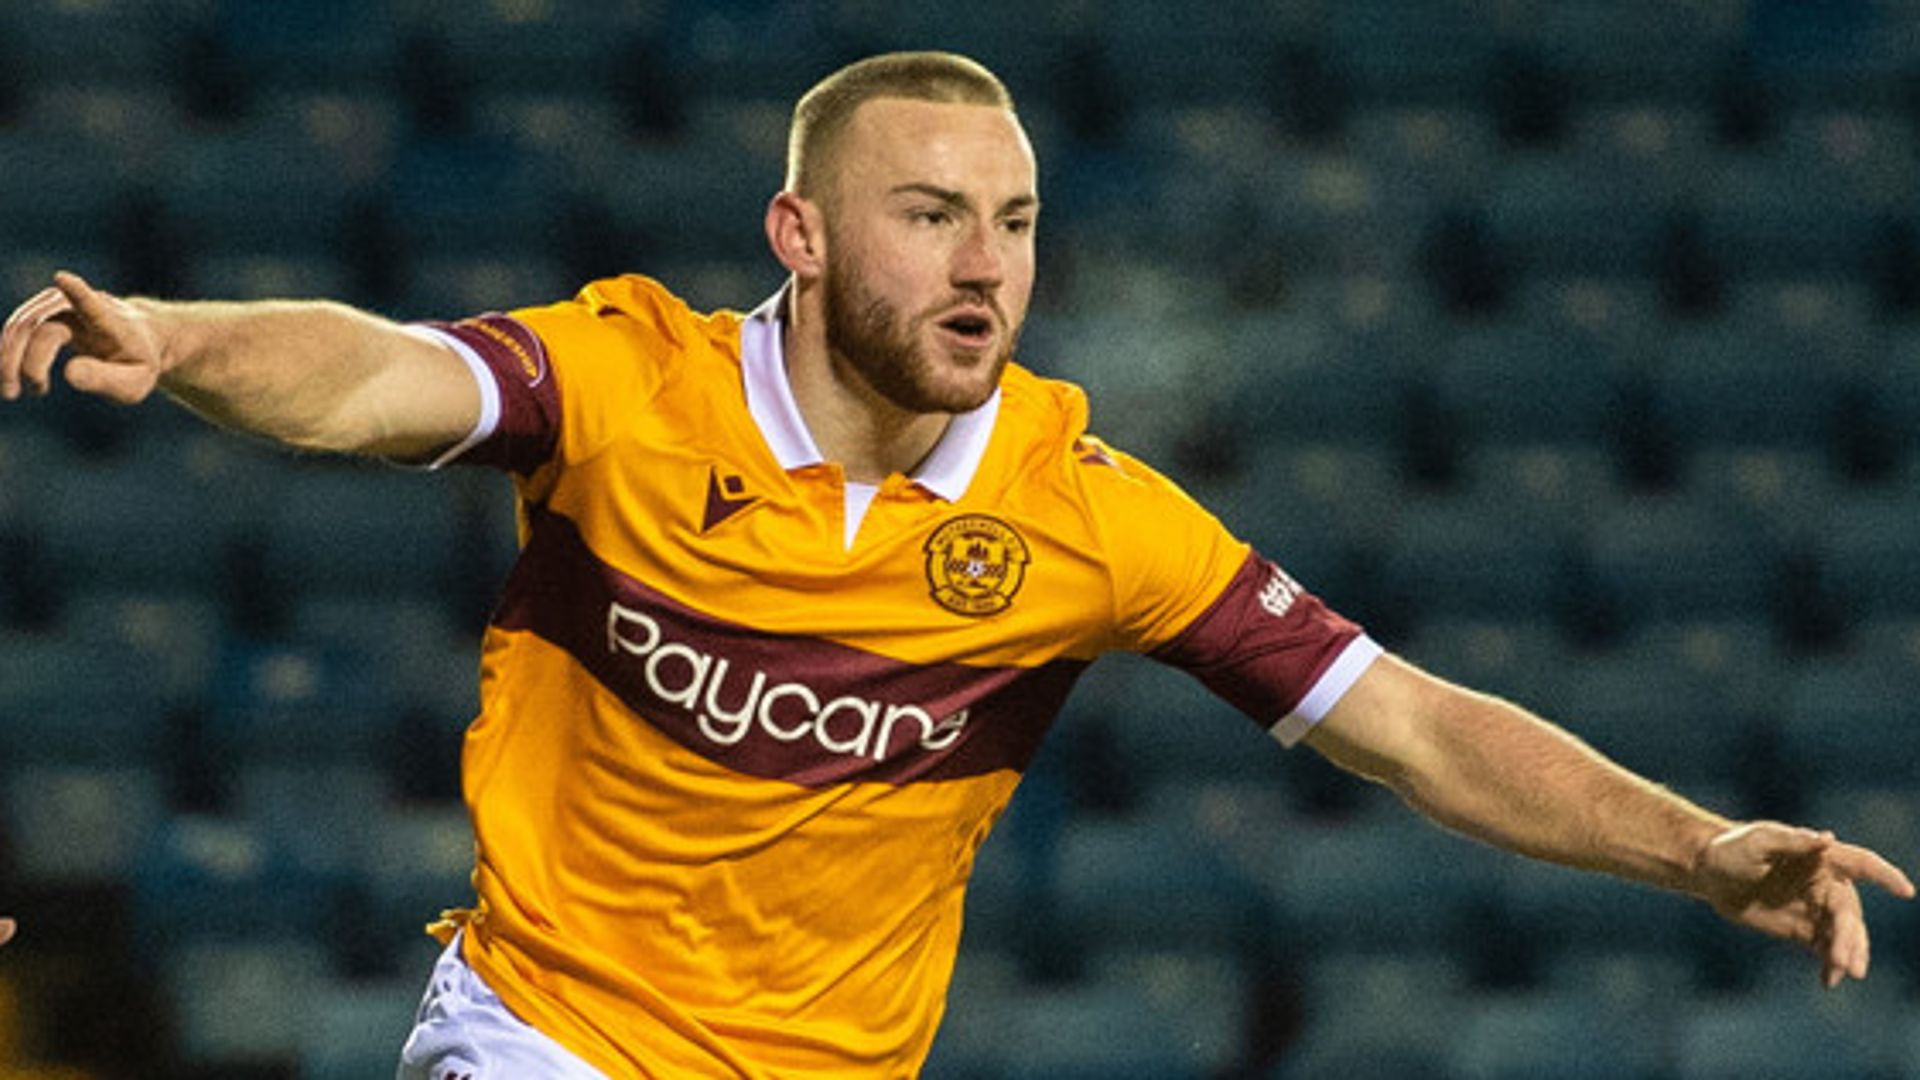 Motherwell edge past Kilmarnock in Wright's first game